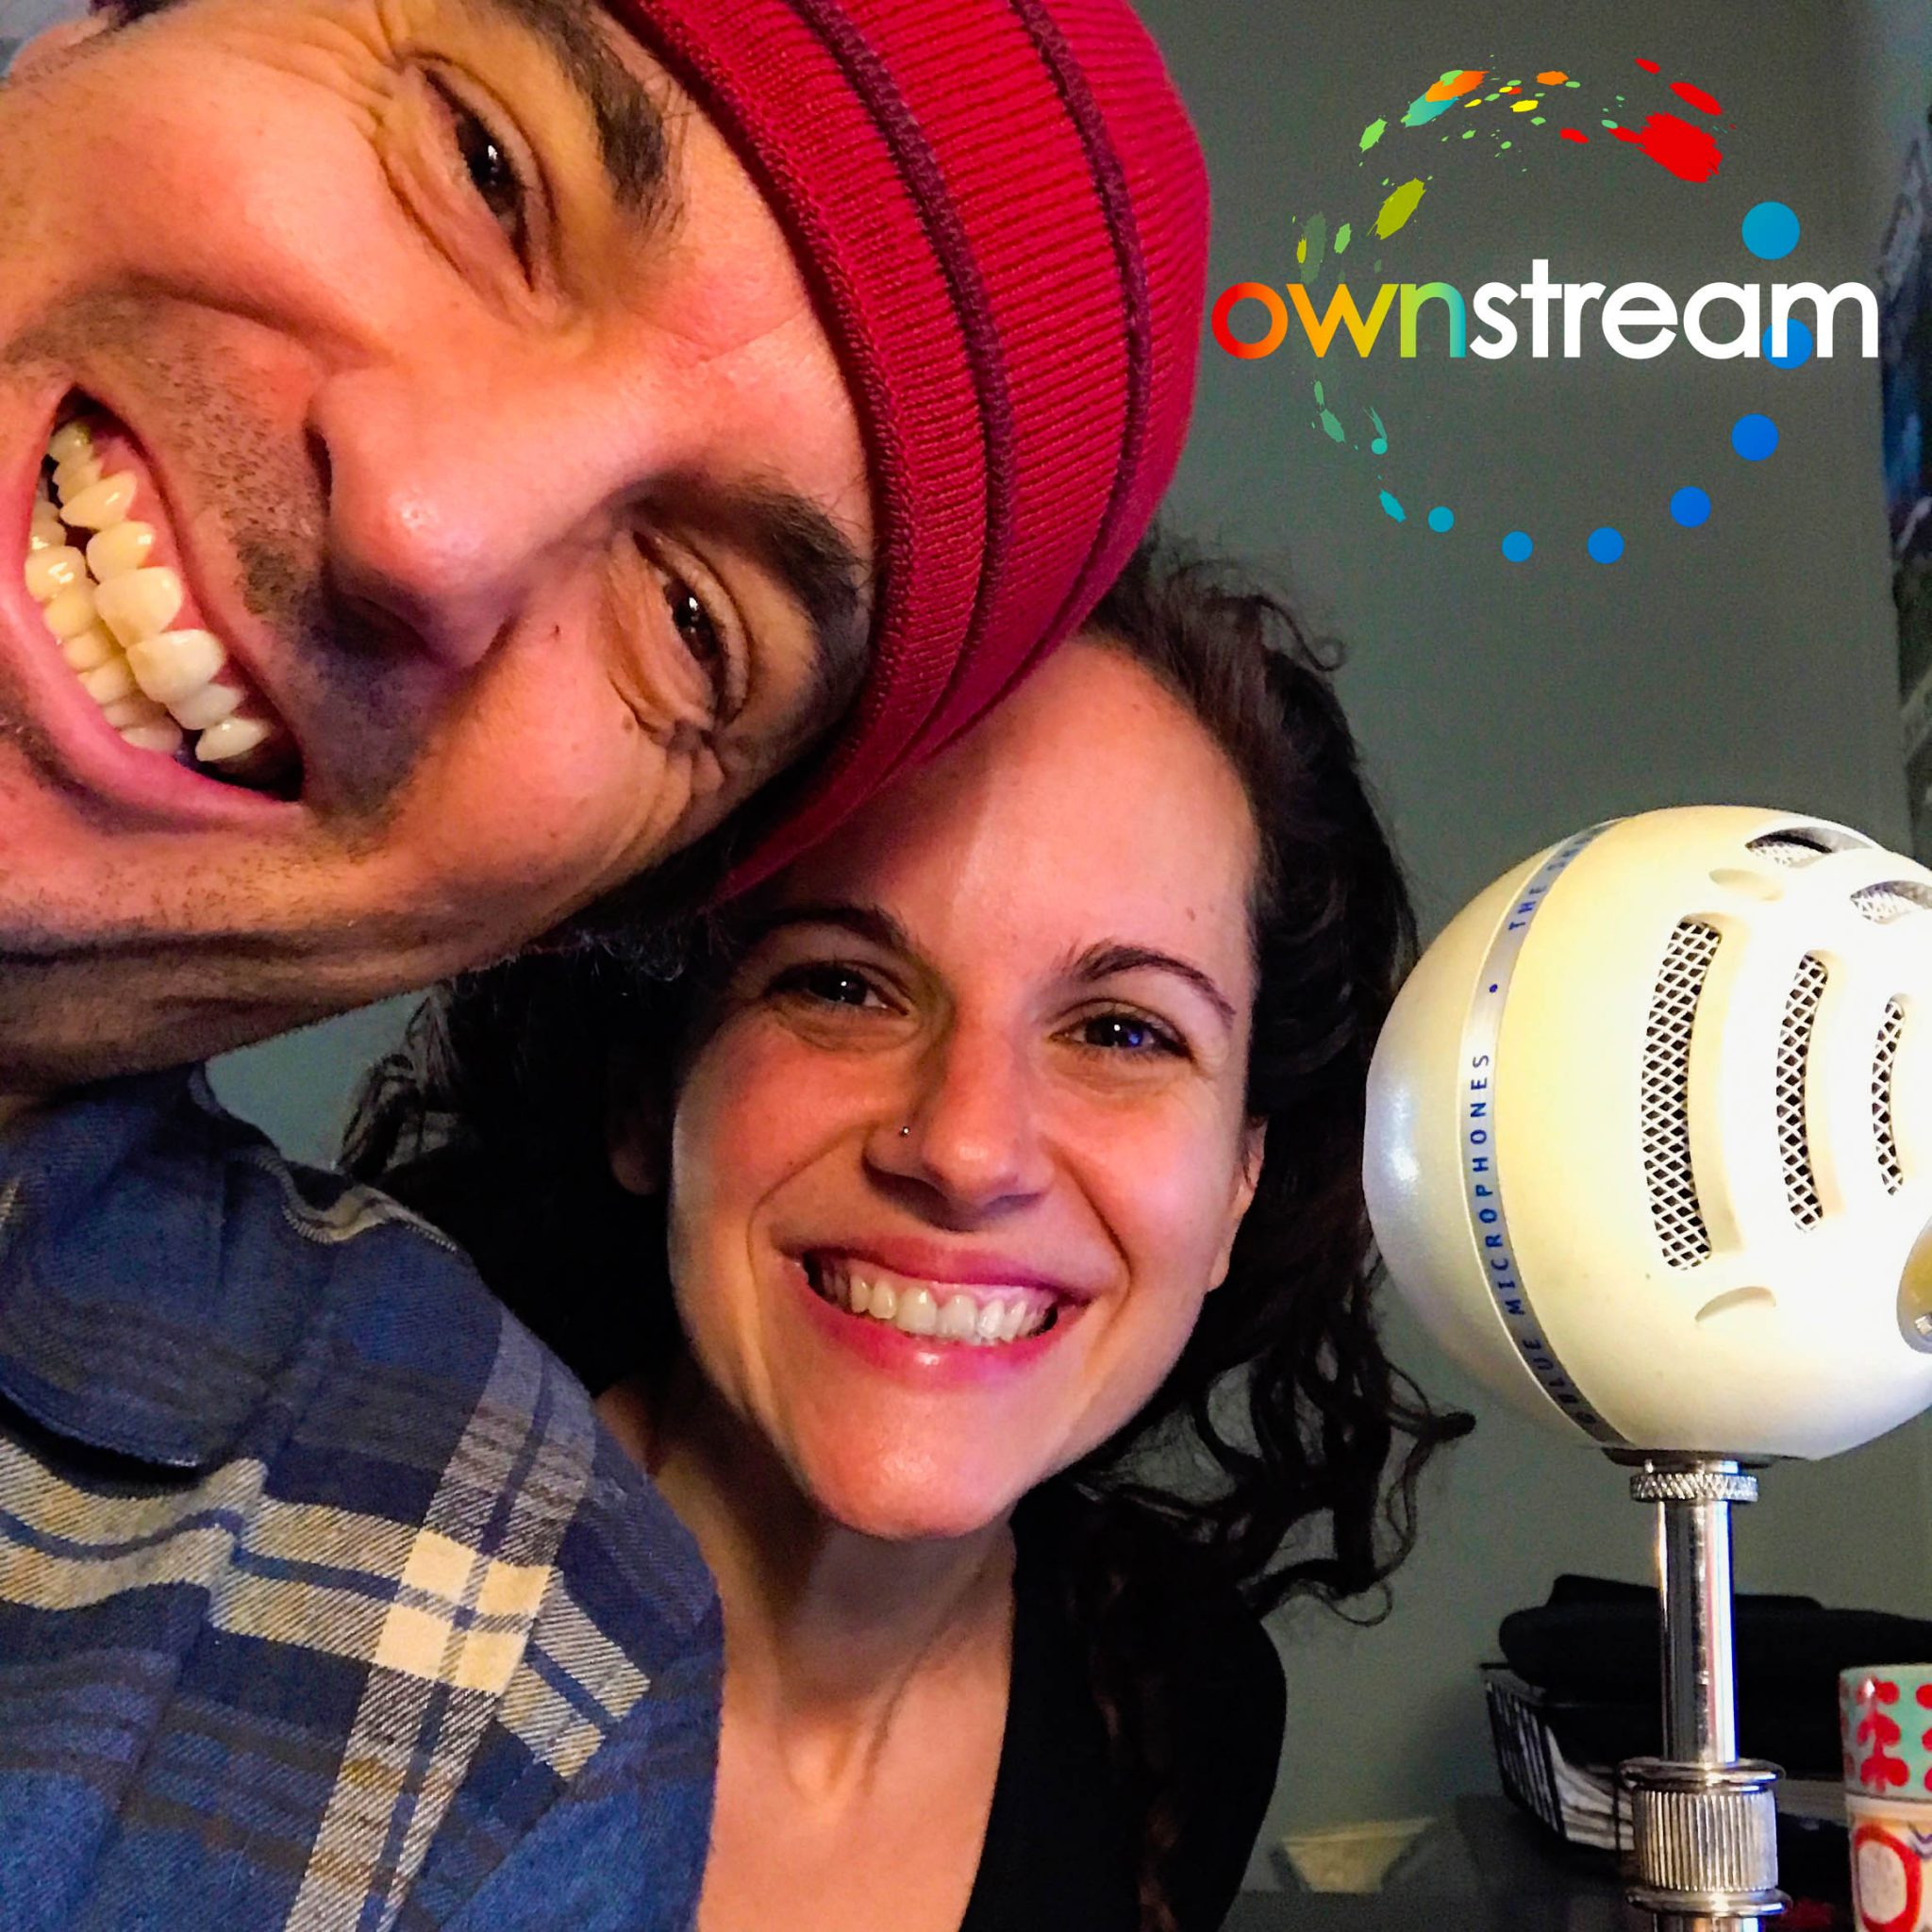 The Ownstream Podcast: New Paradigms For Limitless Living